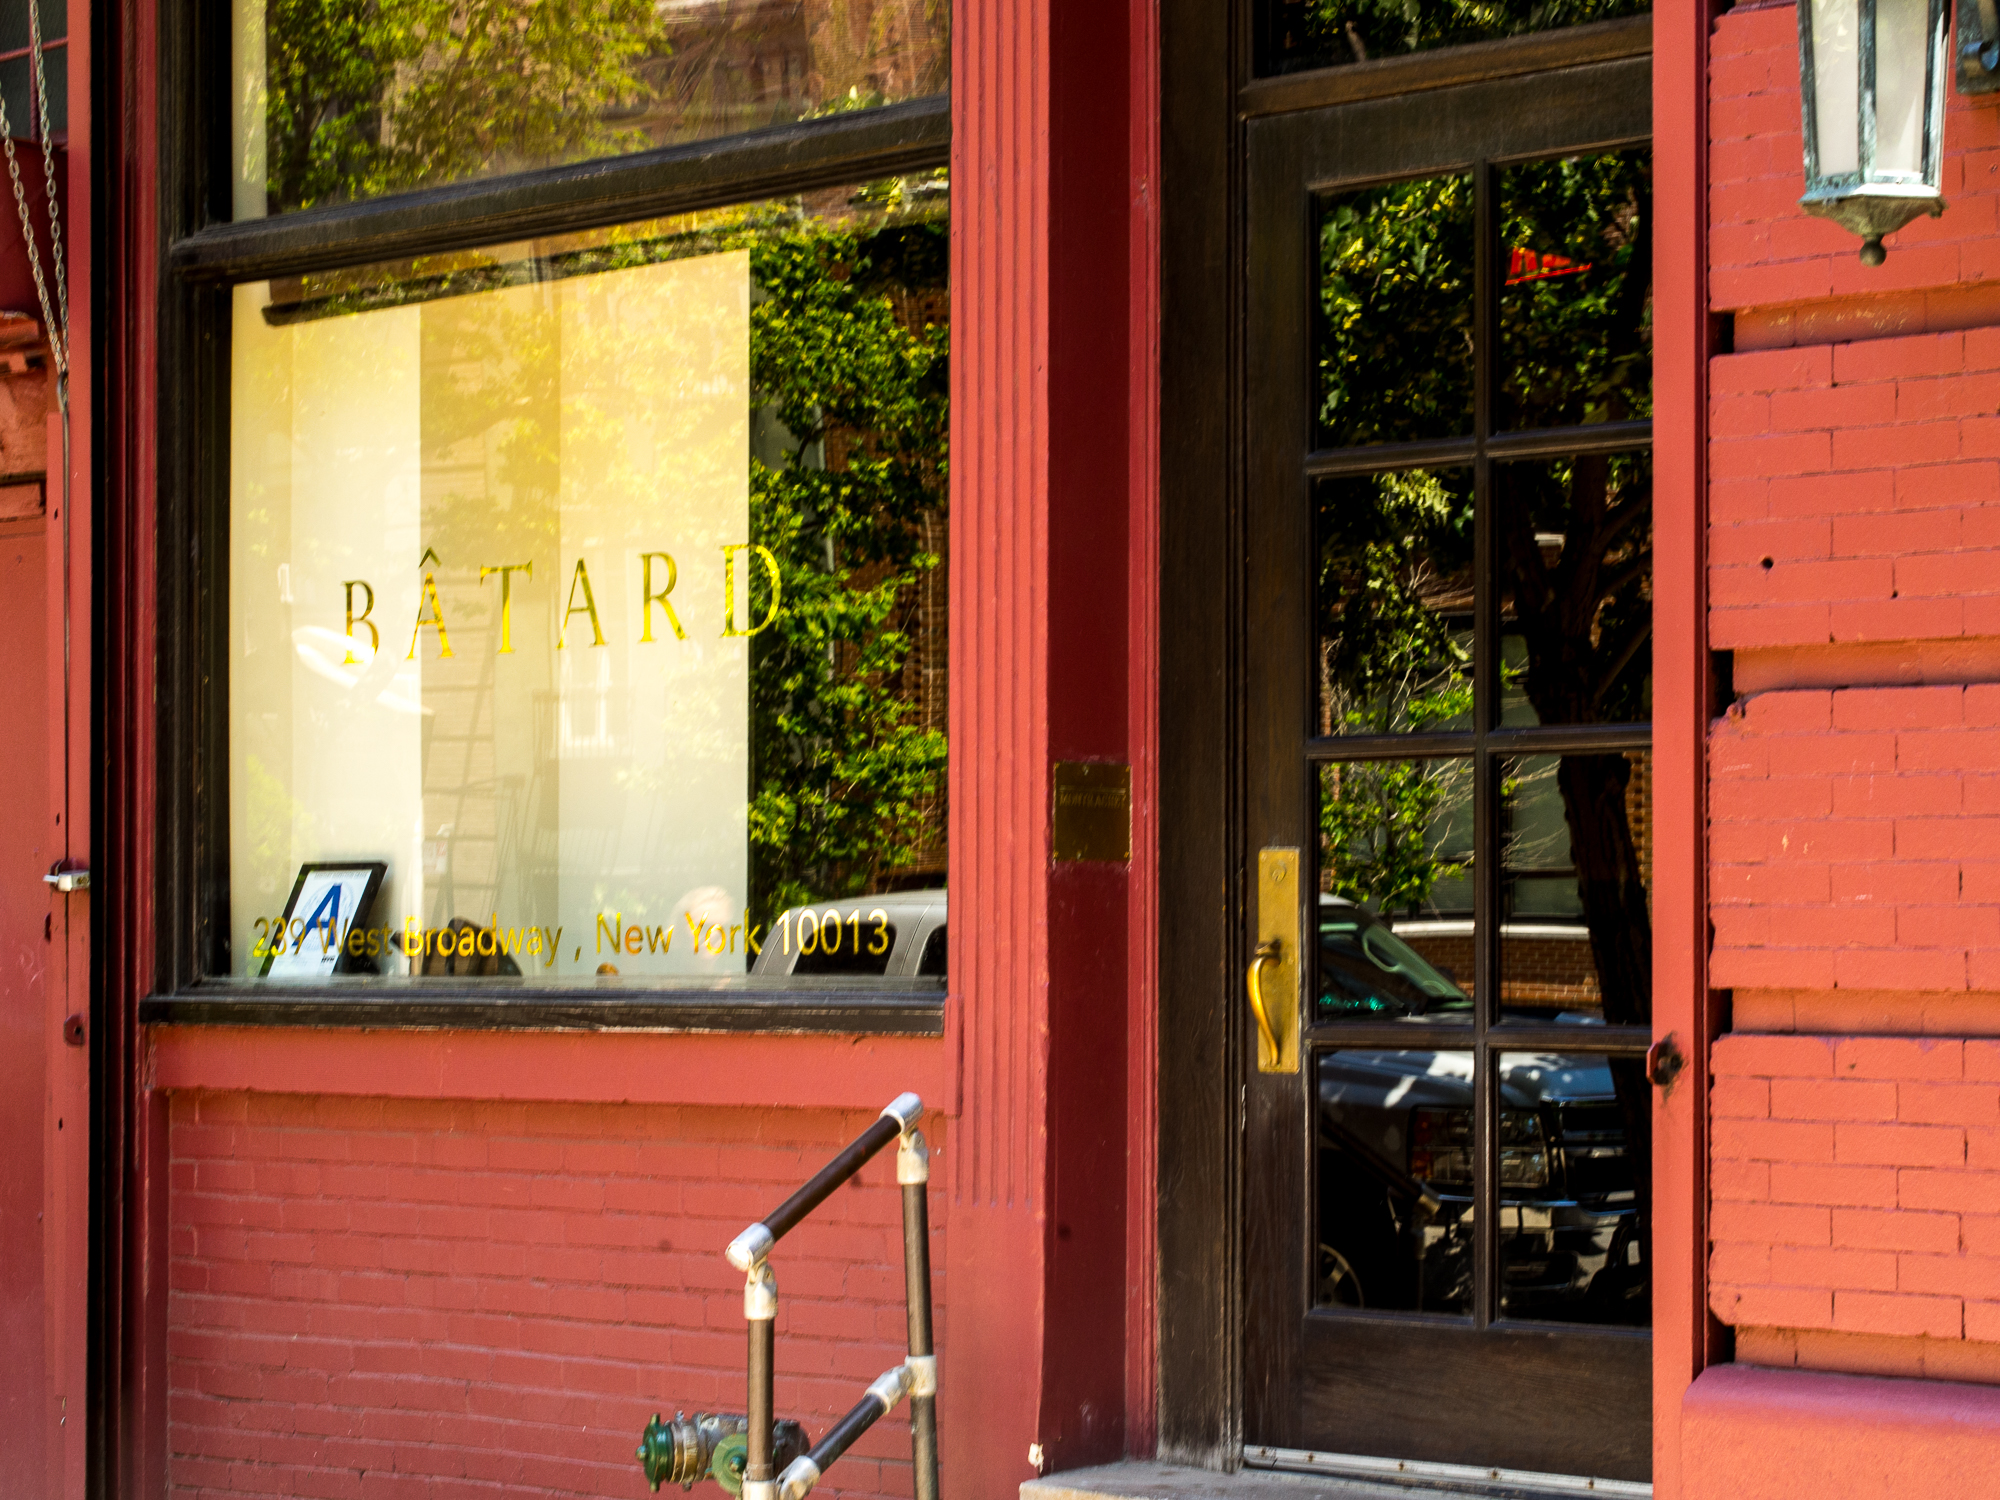 The red painted exterior of the restaurant Bâtard